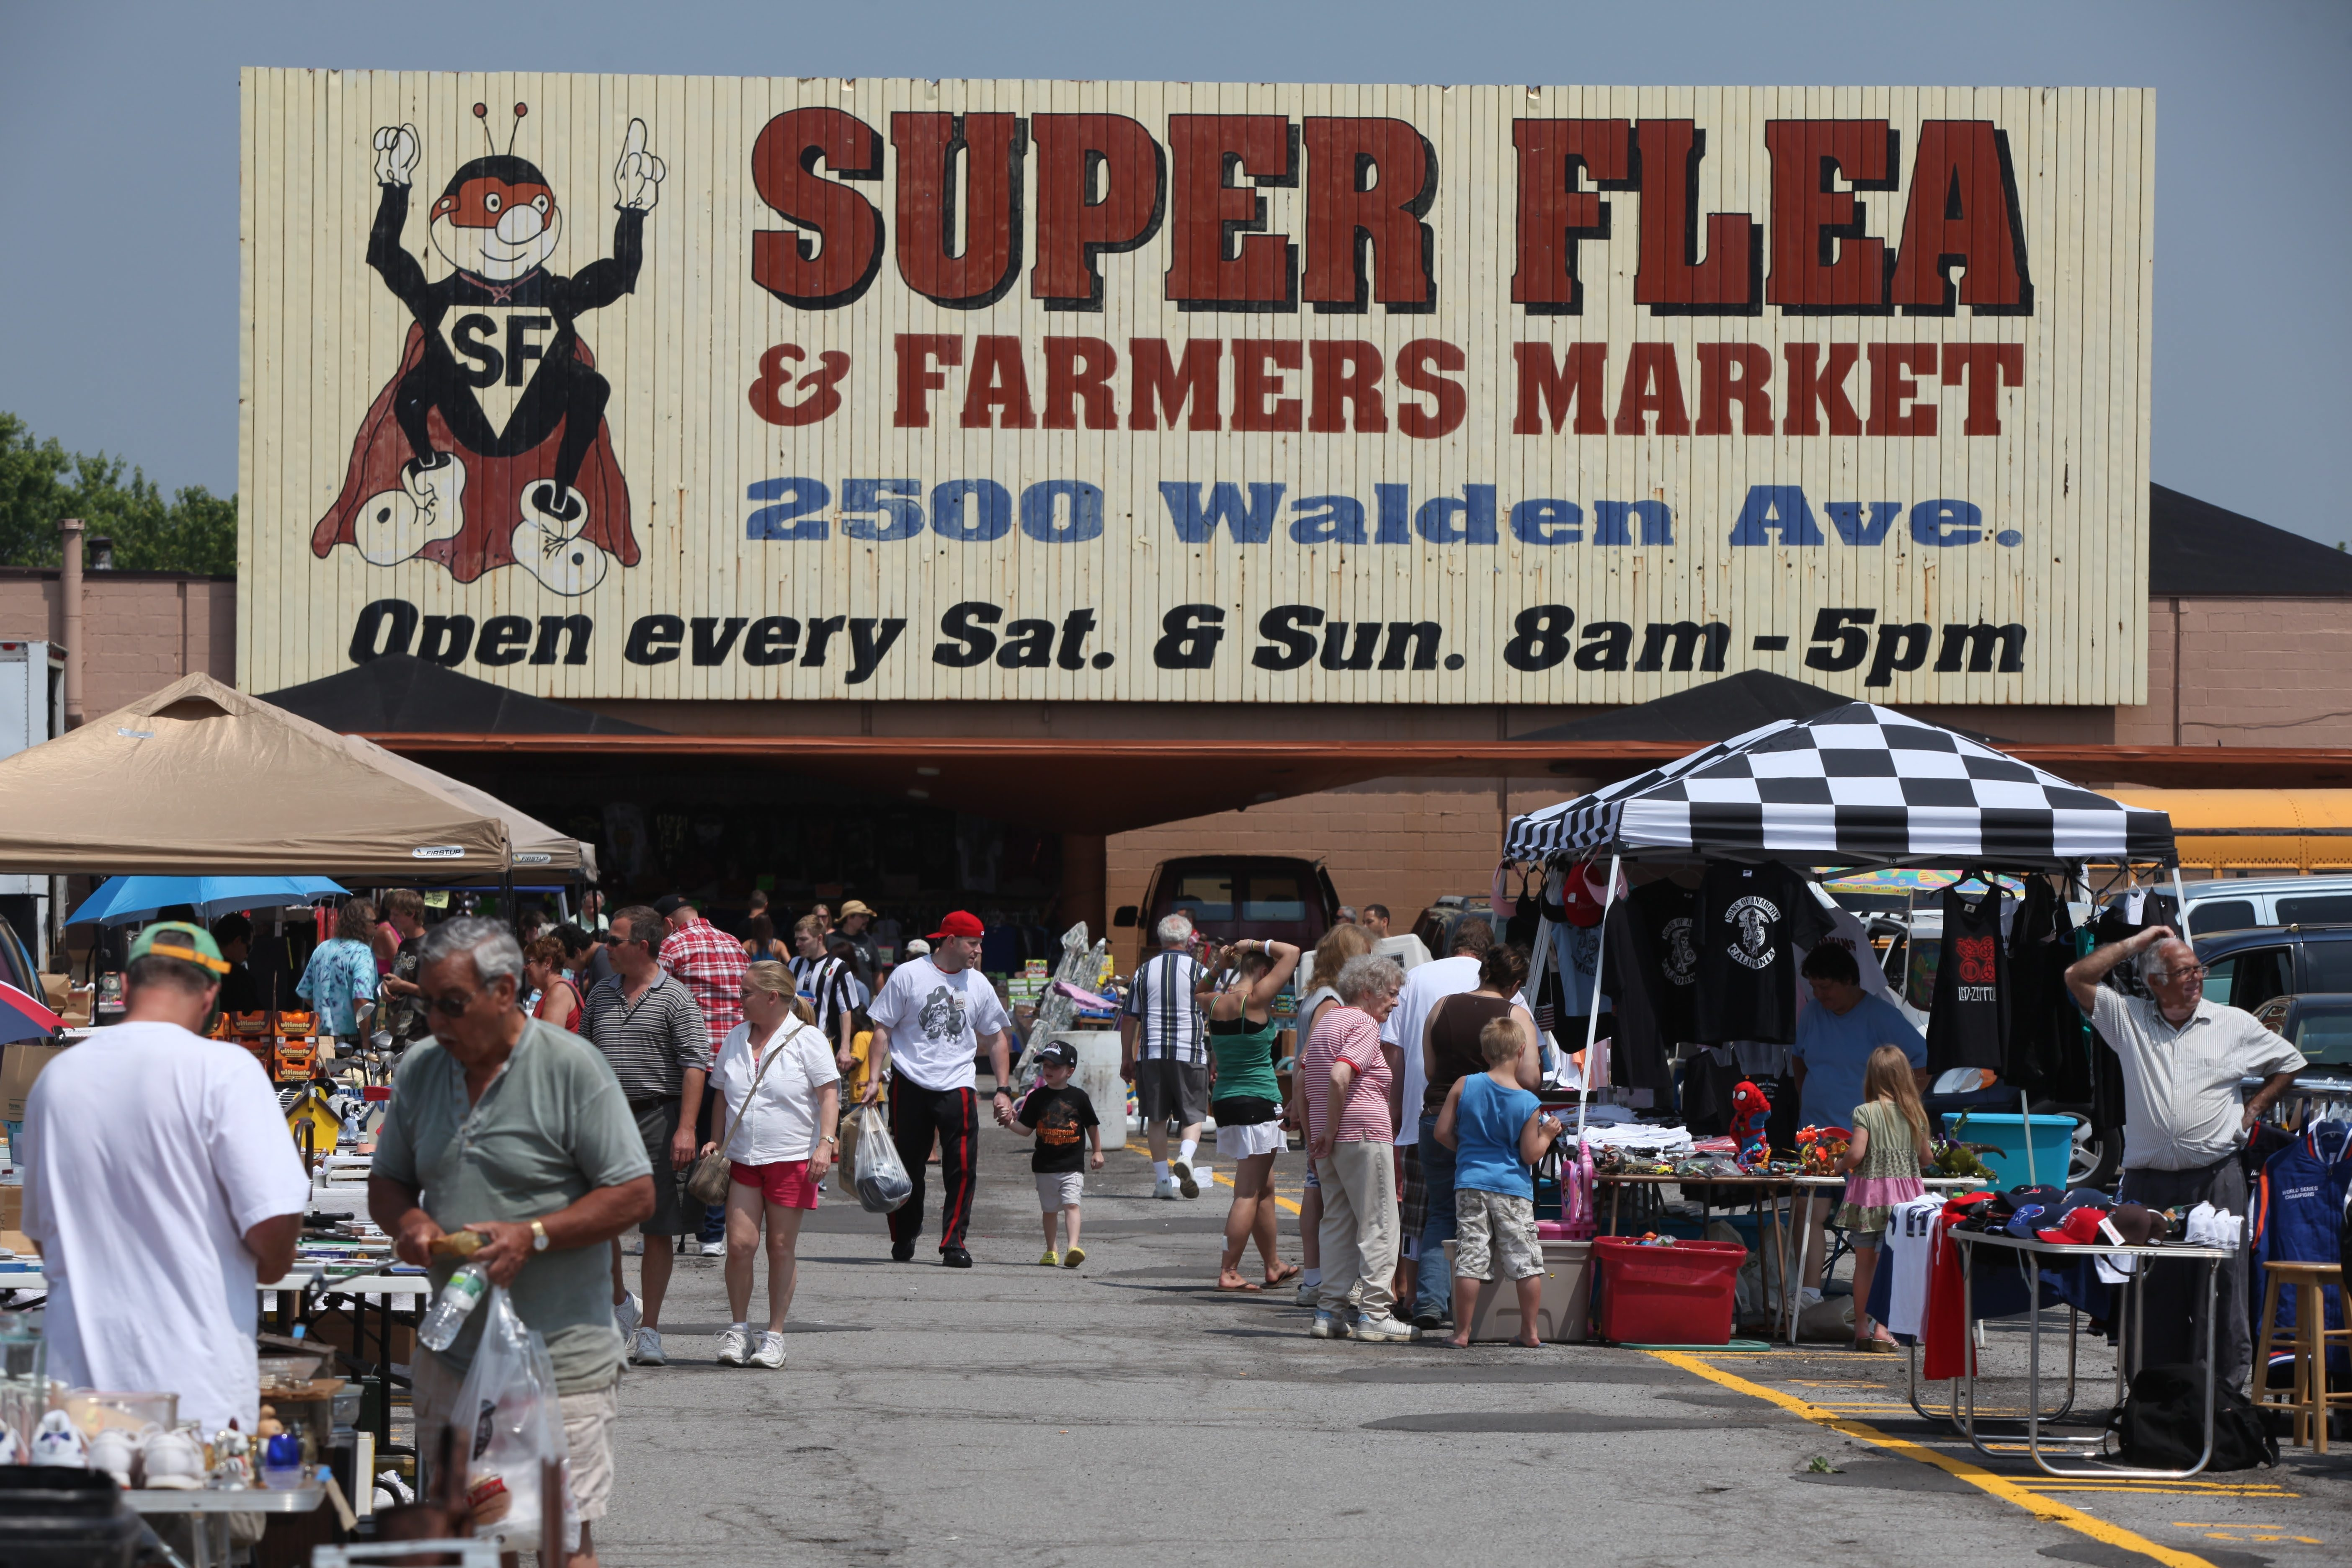 A 183,000-square-foot Walmart Supercenter is coming to the Walden Avenue site that used to house the Super Flea & Farmers Market.  (File photo by Charles Lewis/Buffalo News)